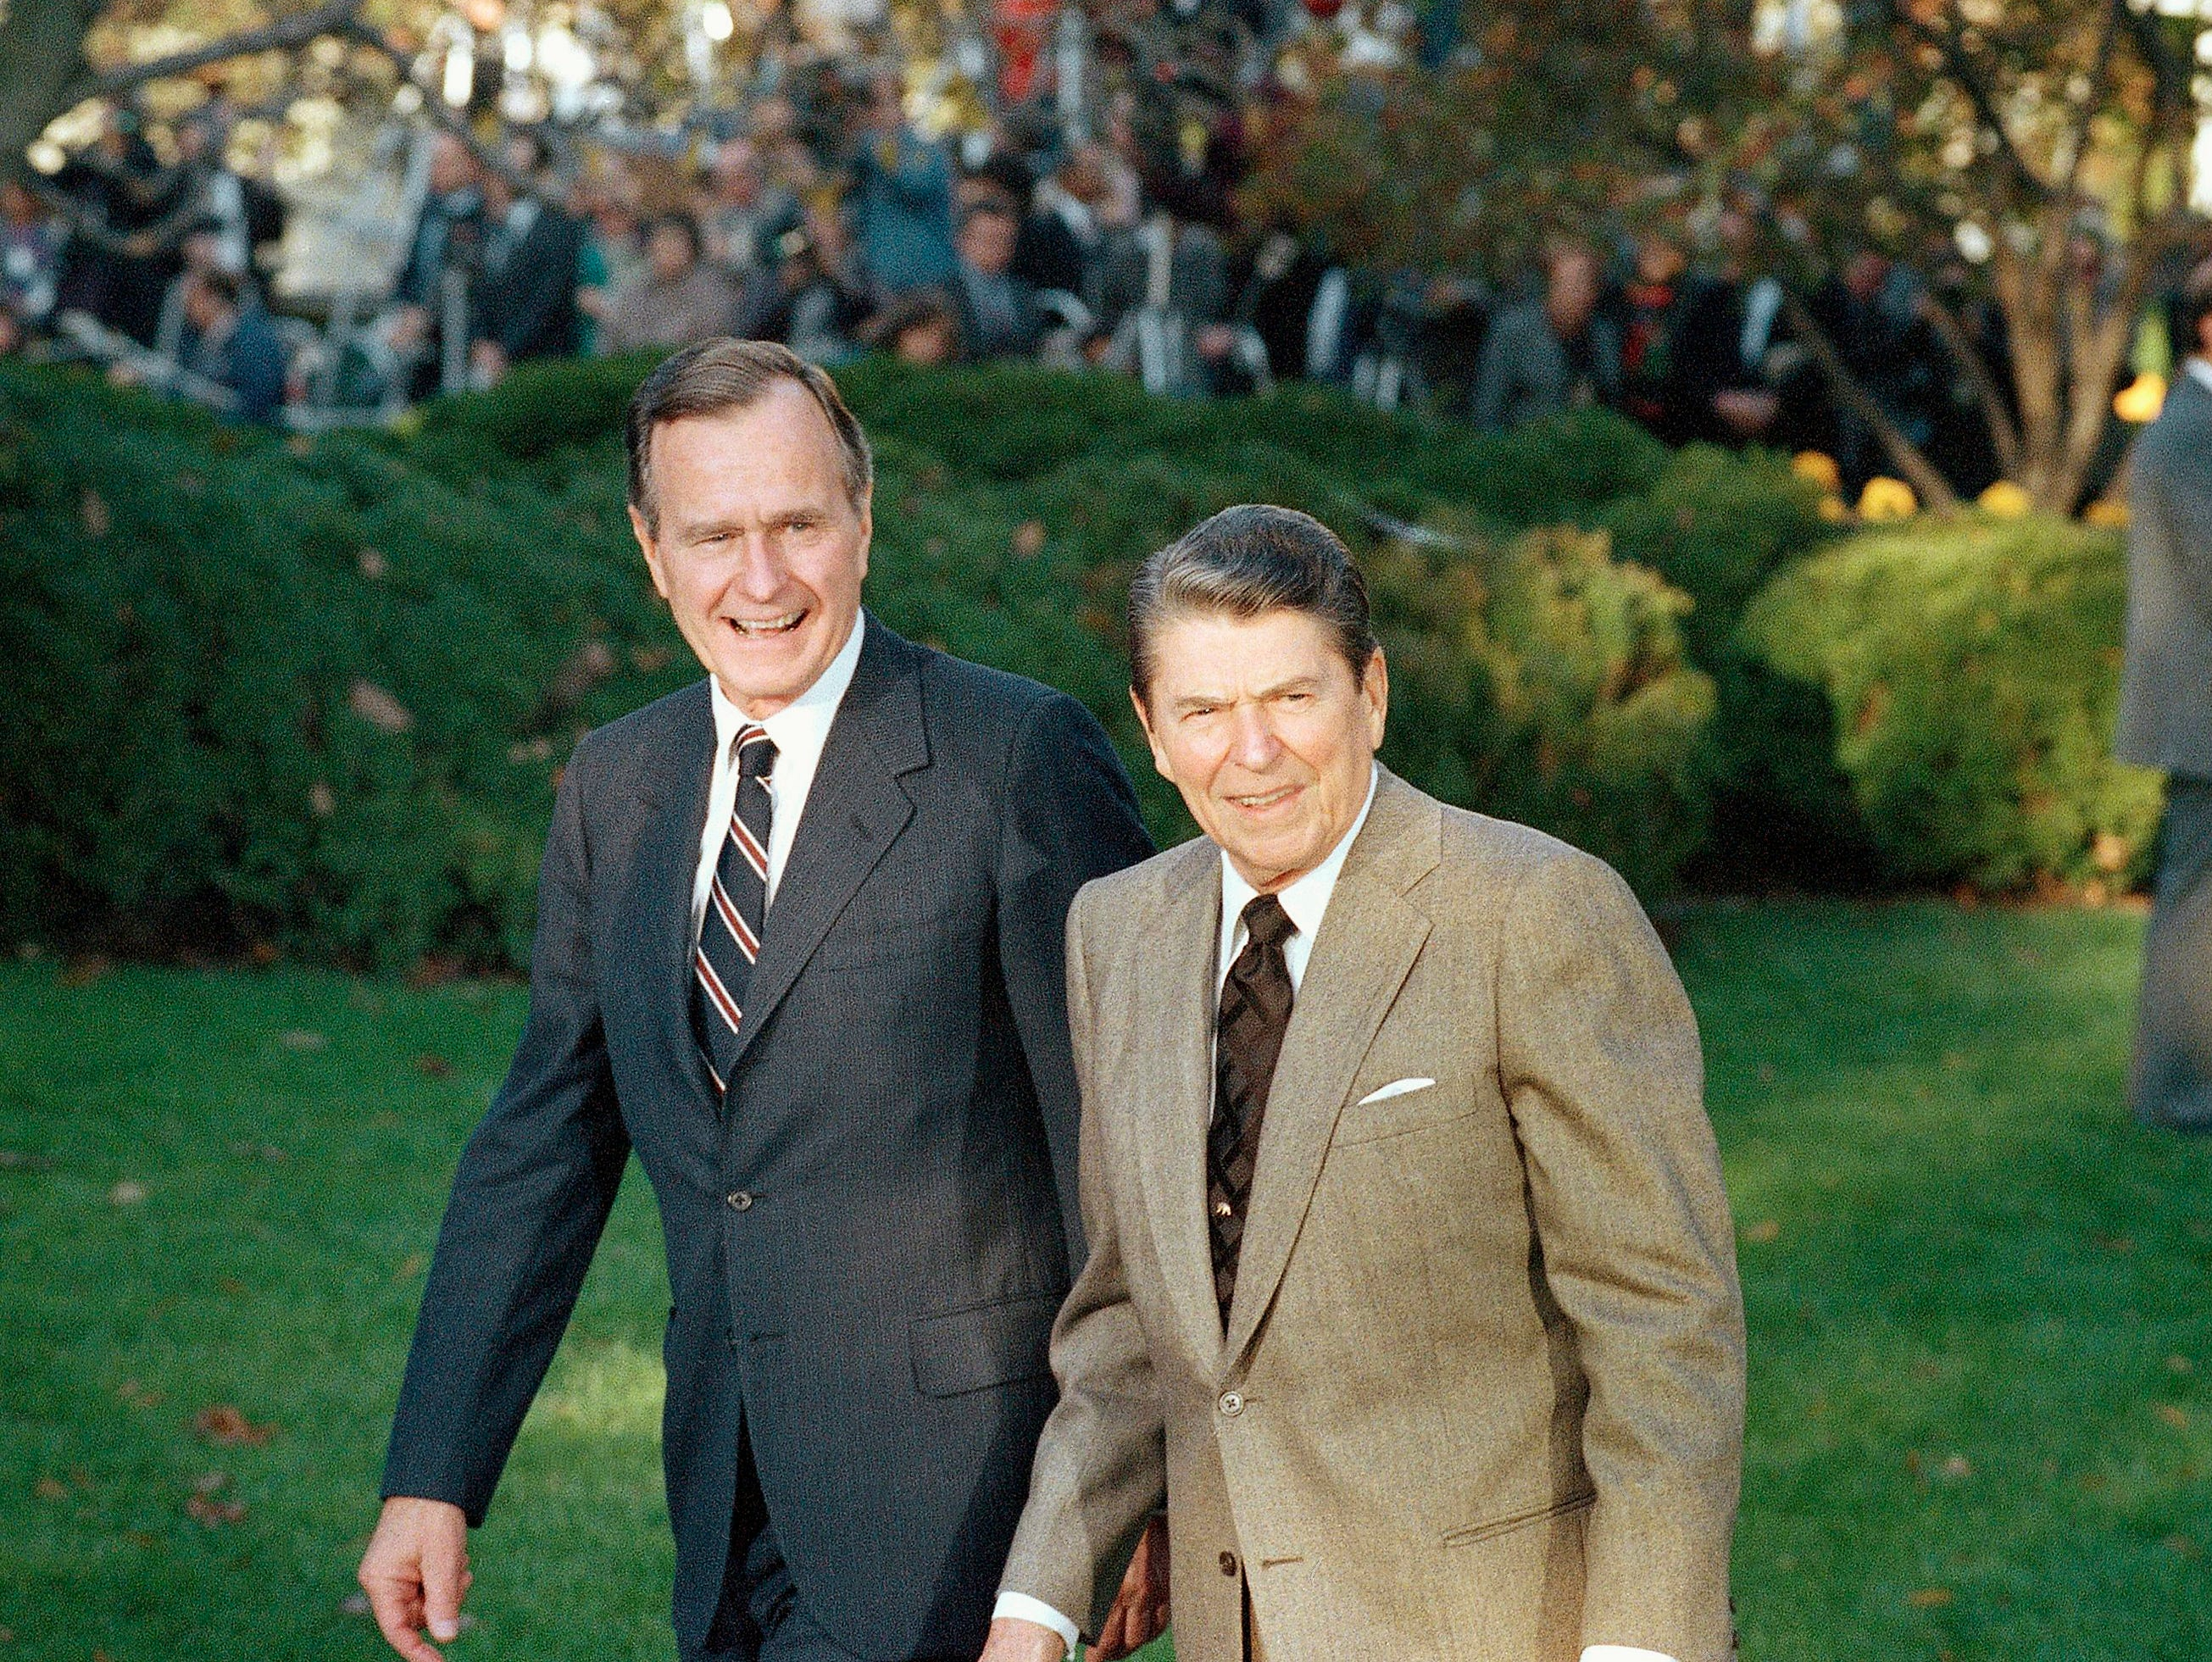 Pres. Ronald Reagan greets President-elect George H. W. Bush, left, upon his arrival to the White House, Wednesday, Nov. 10, 1988, Washington, D.C. (AP Photo/Charles Tasnadi)